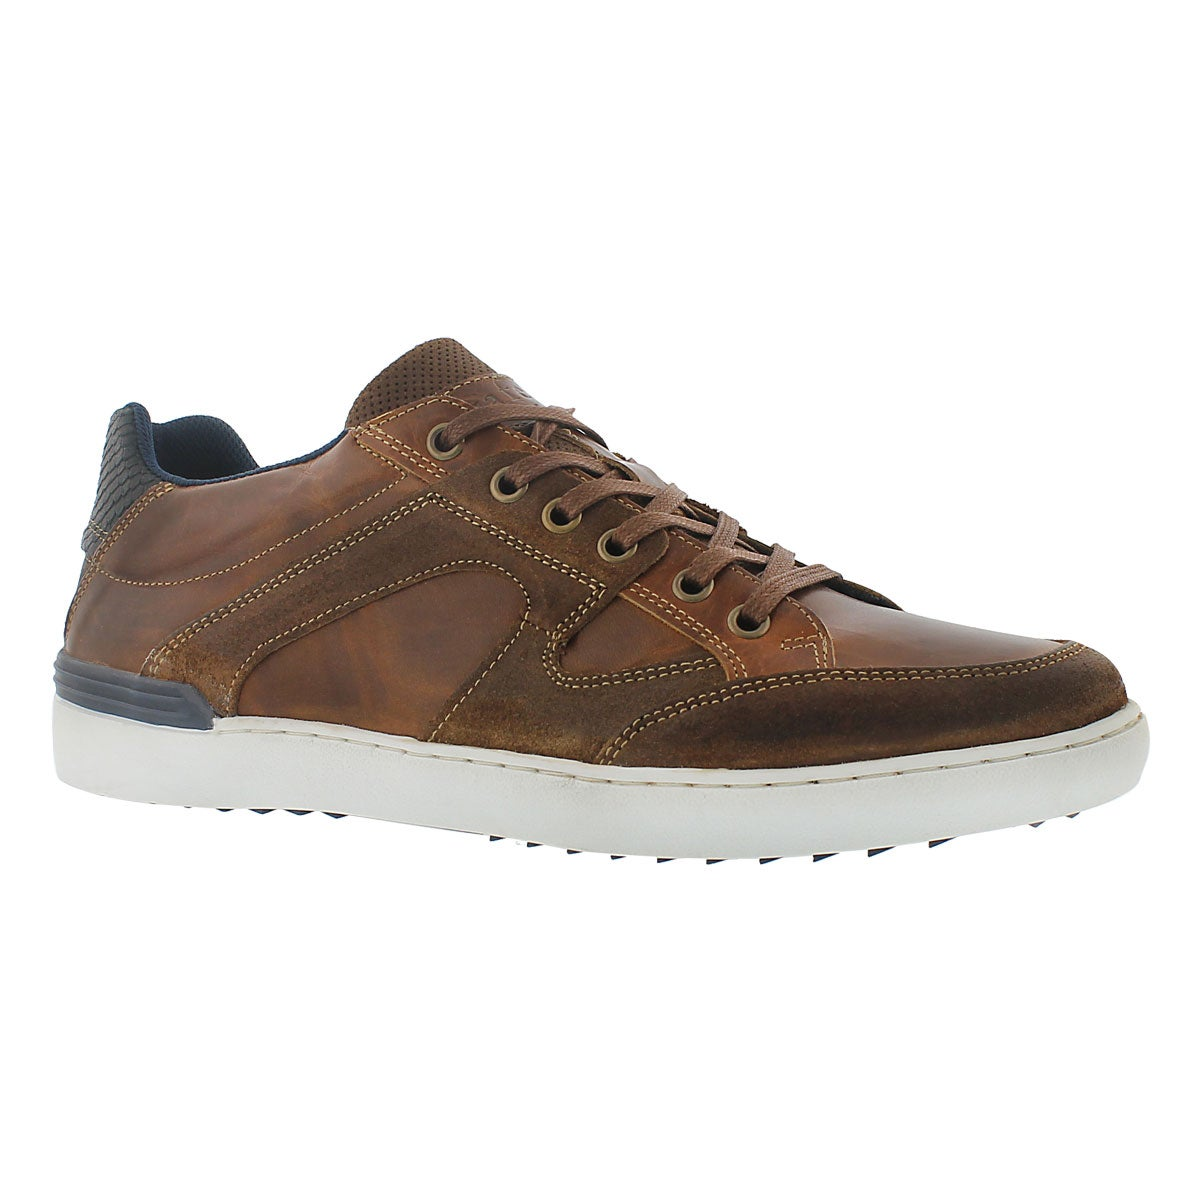 Men's JONAH camel lace up fashion sneakers